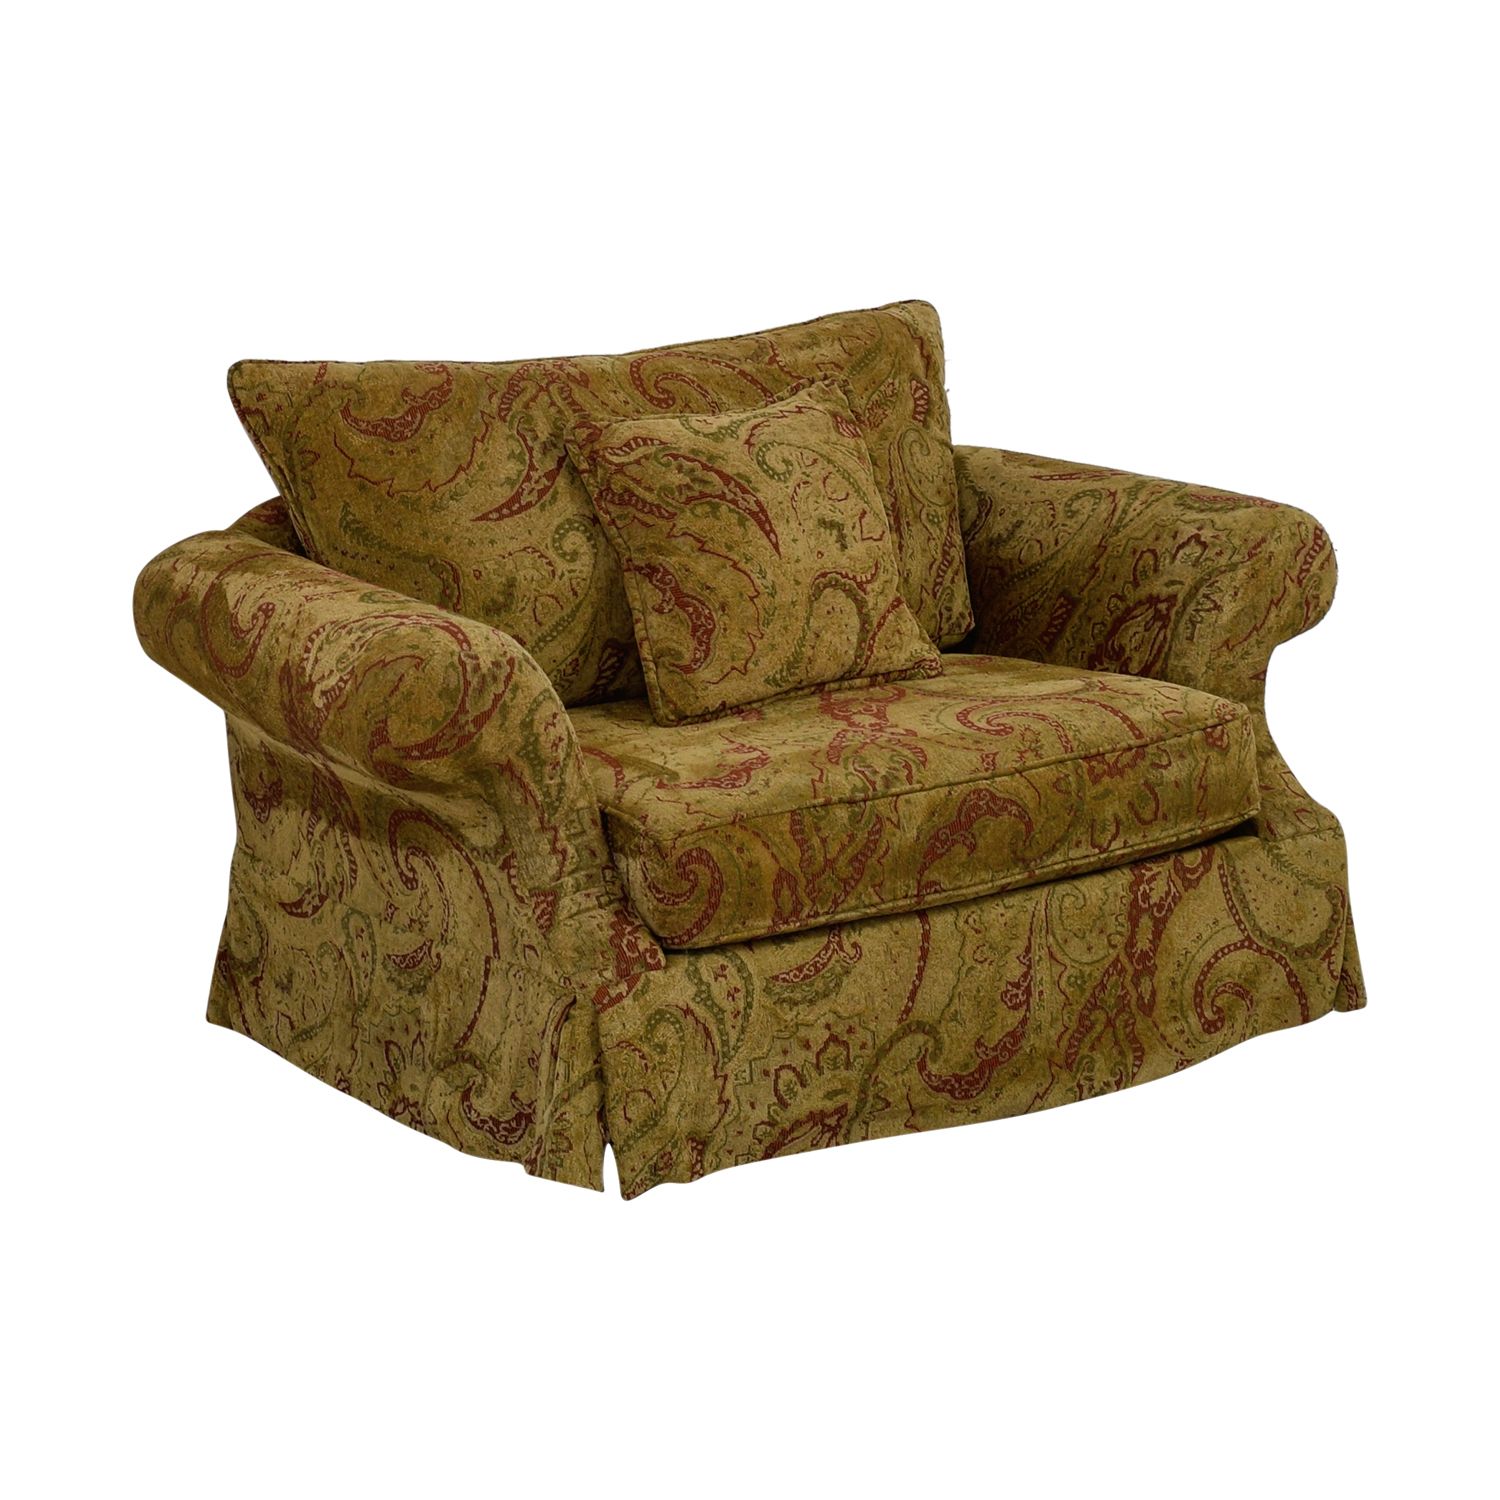 Bernhardt Gold and Red Love Seat sale